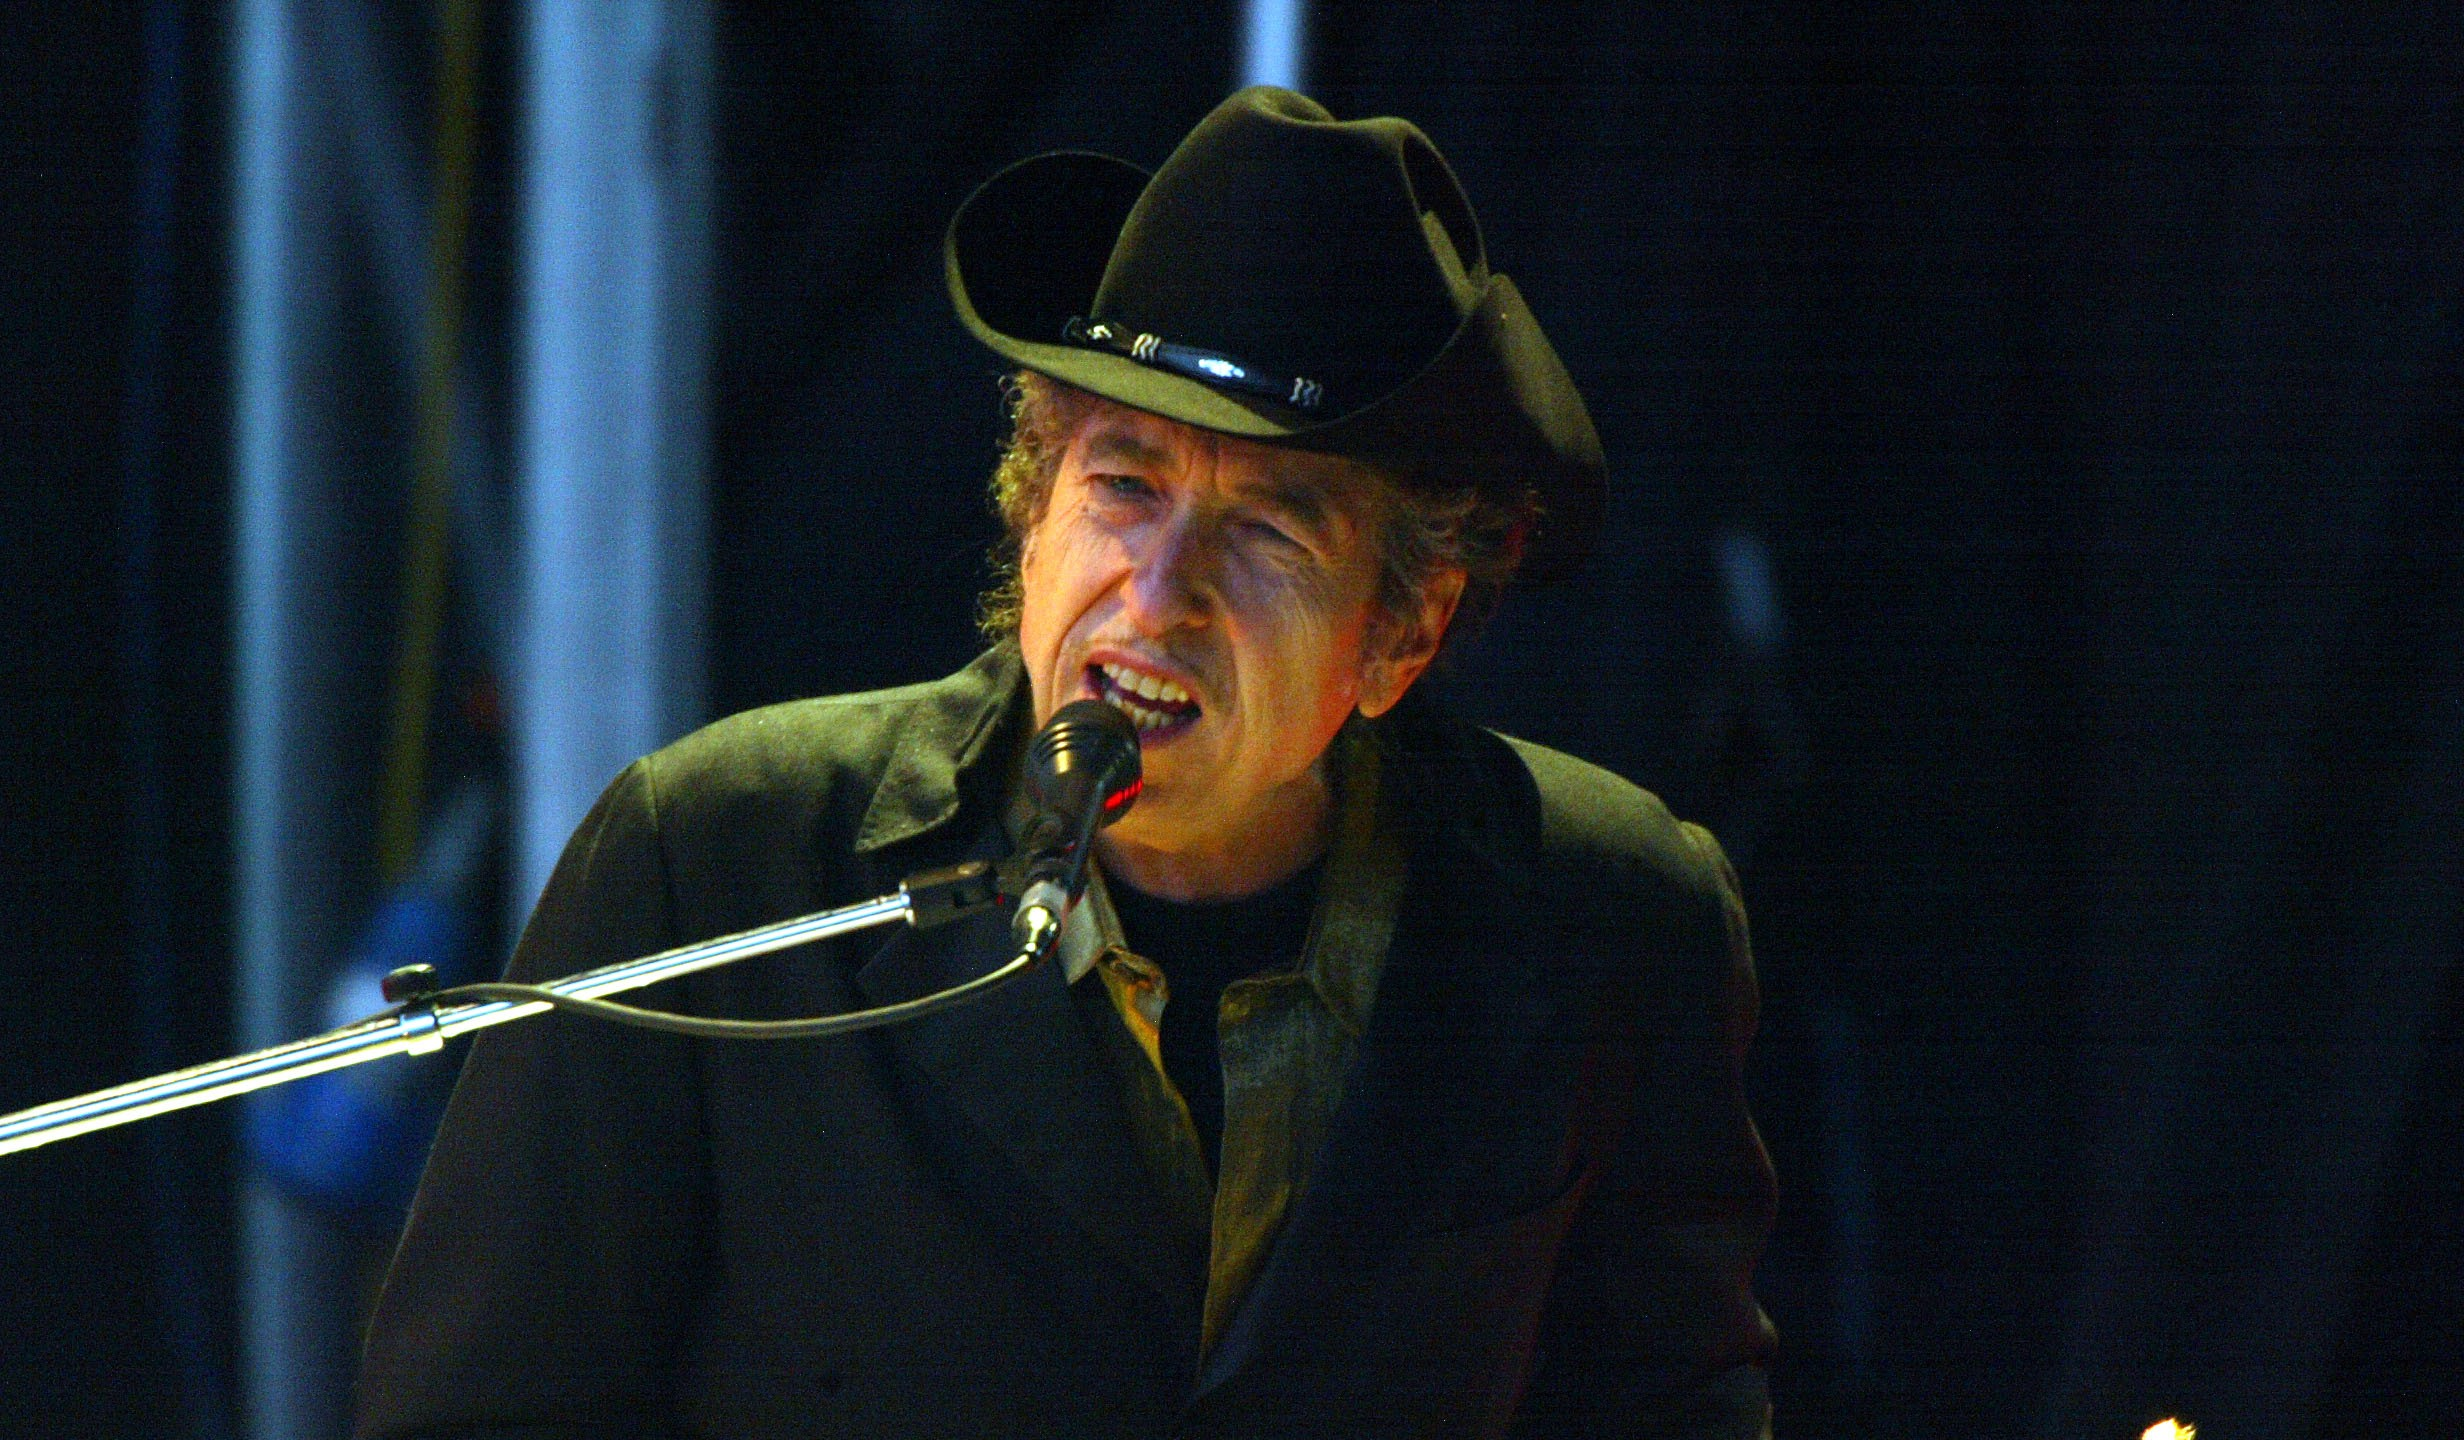 Singer Bob Dylan performs on stage at The Fleadh 2004 at Finsbury Park June 20, 2004 in London, England. (Getty Images)